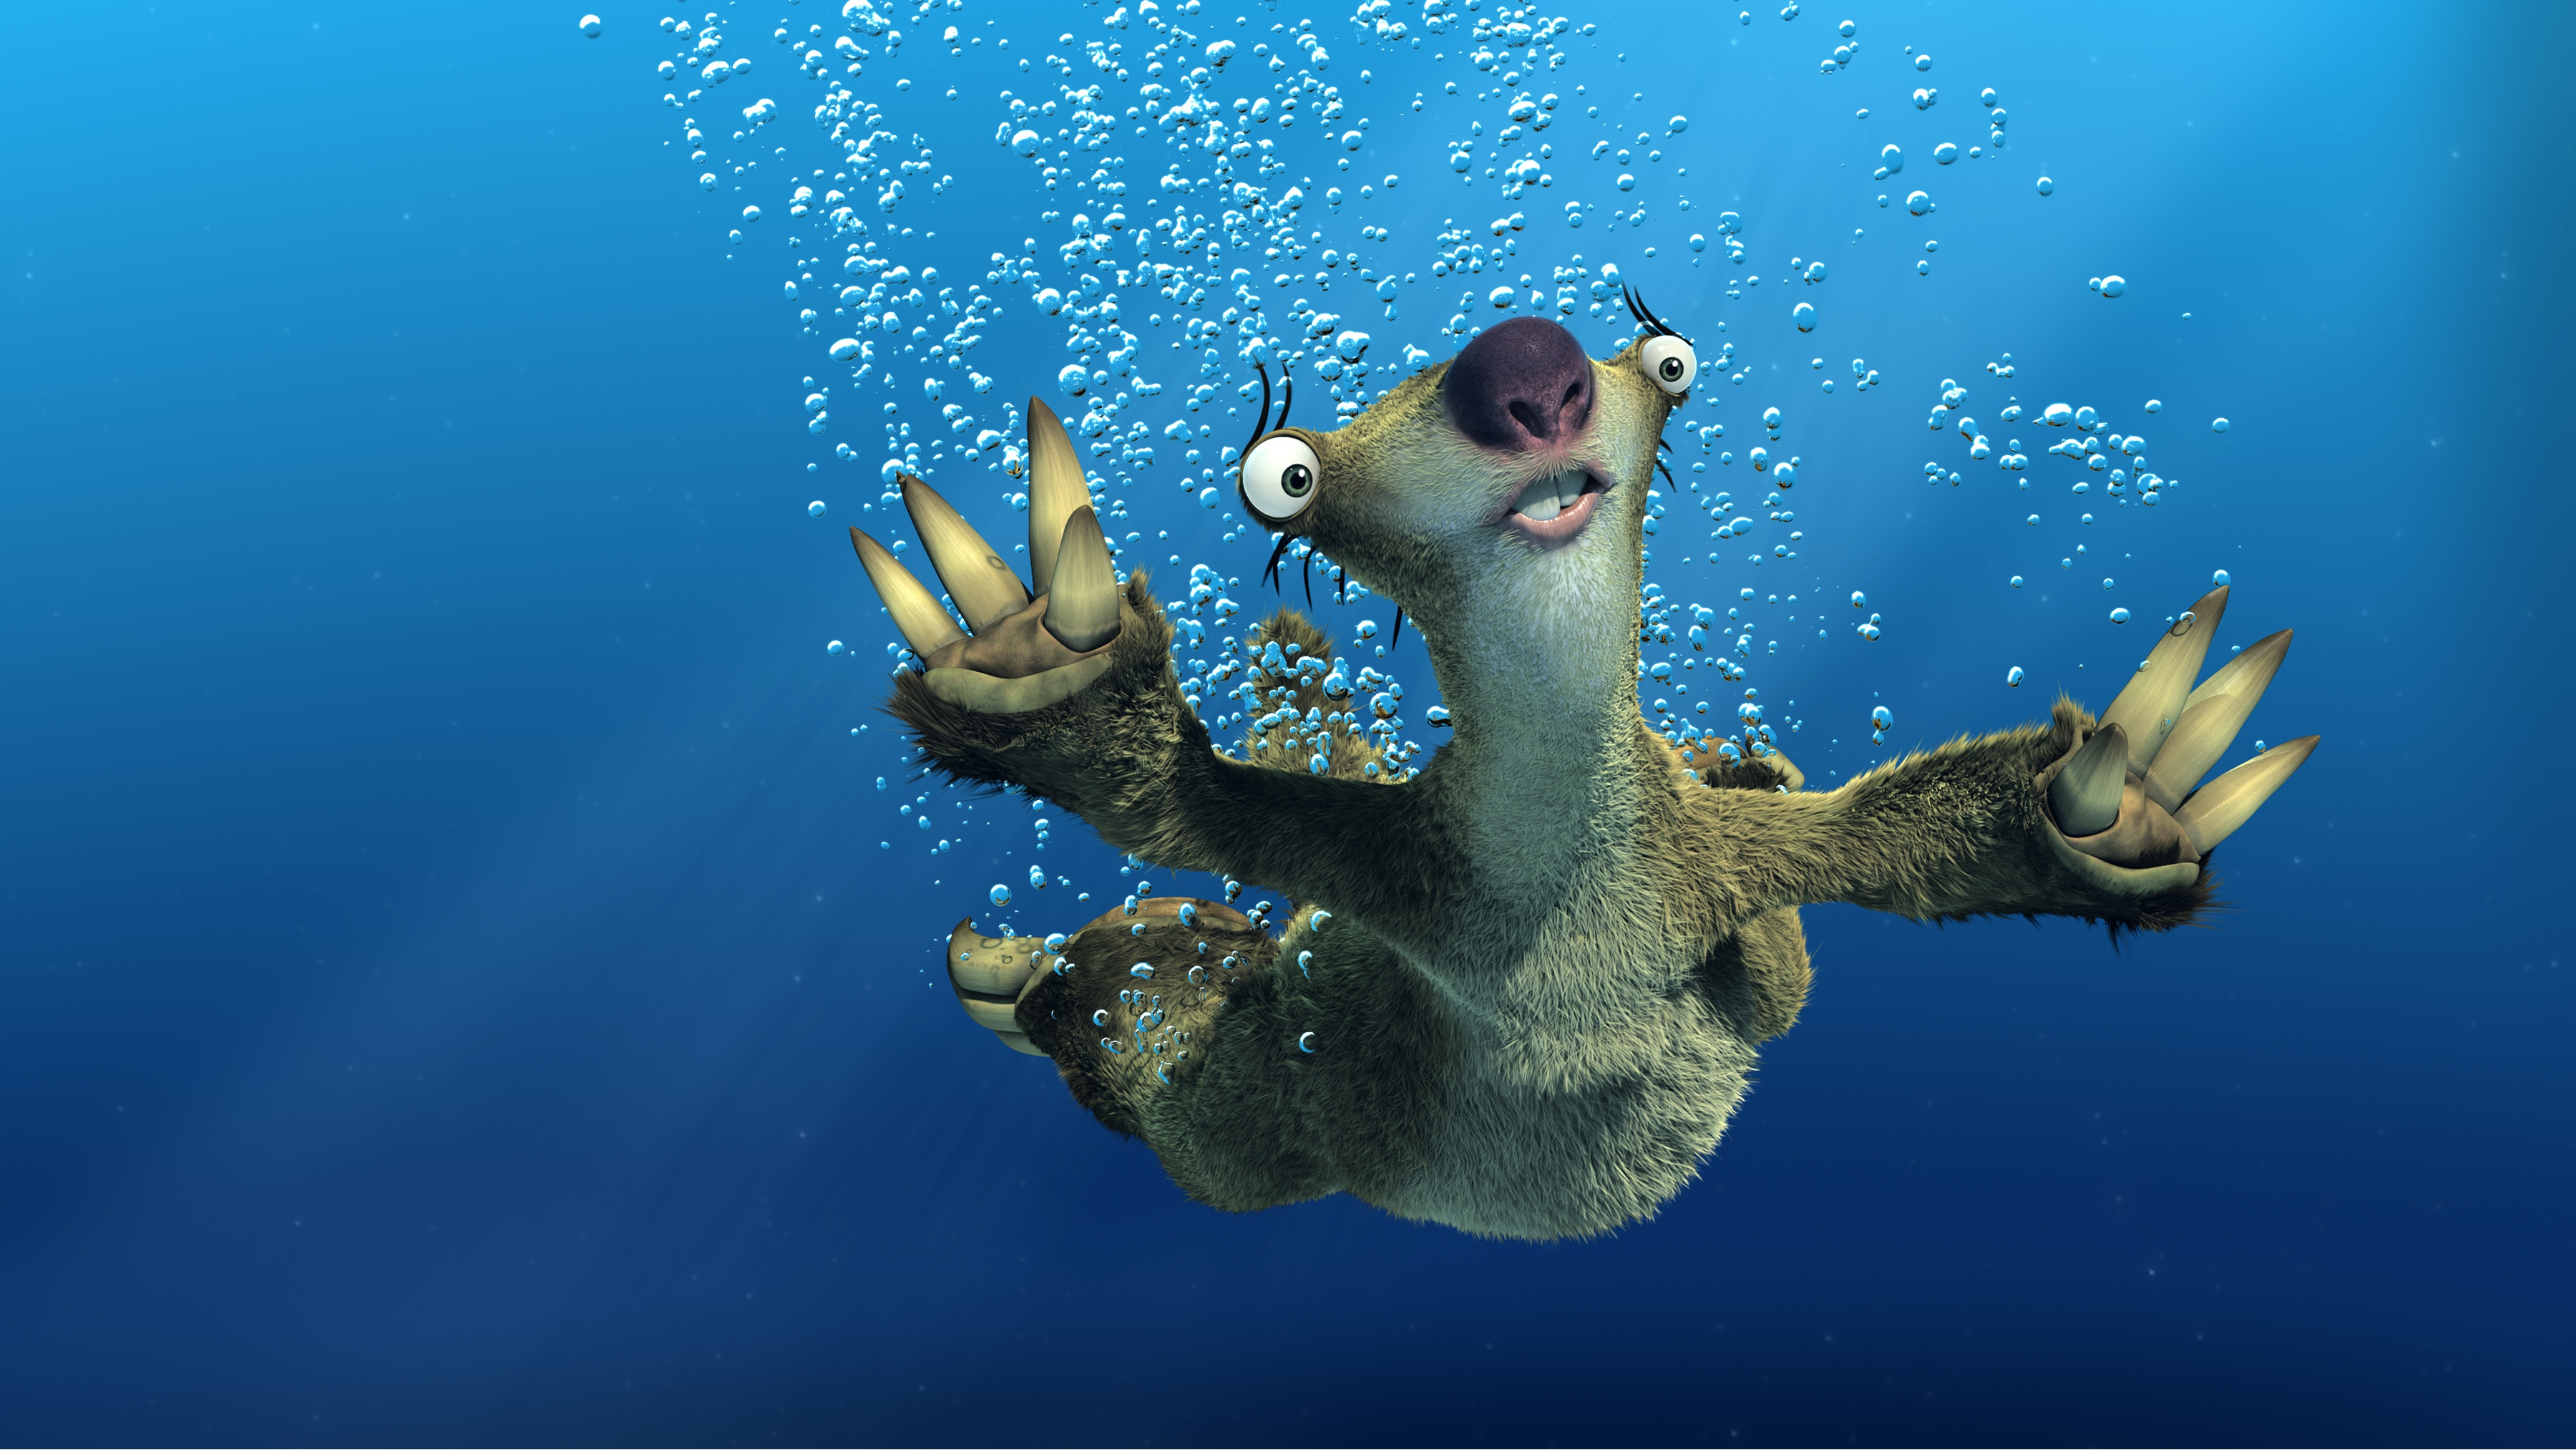 ice age sloth sid hd wall paper